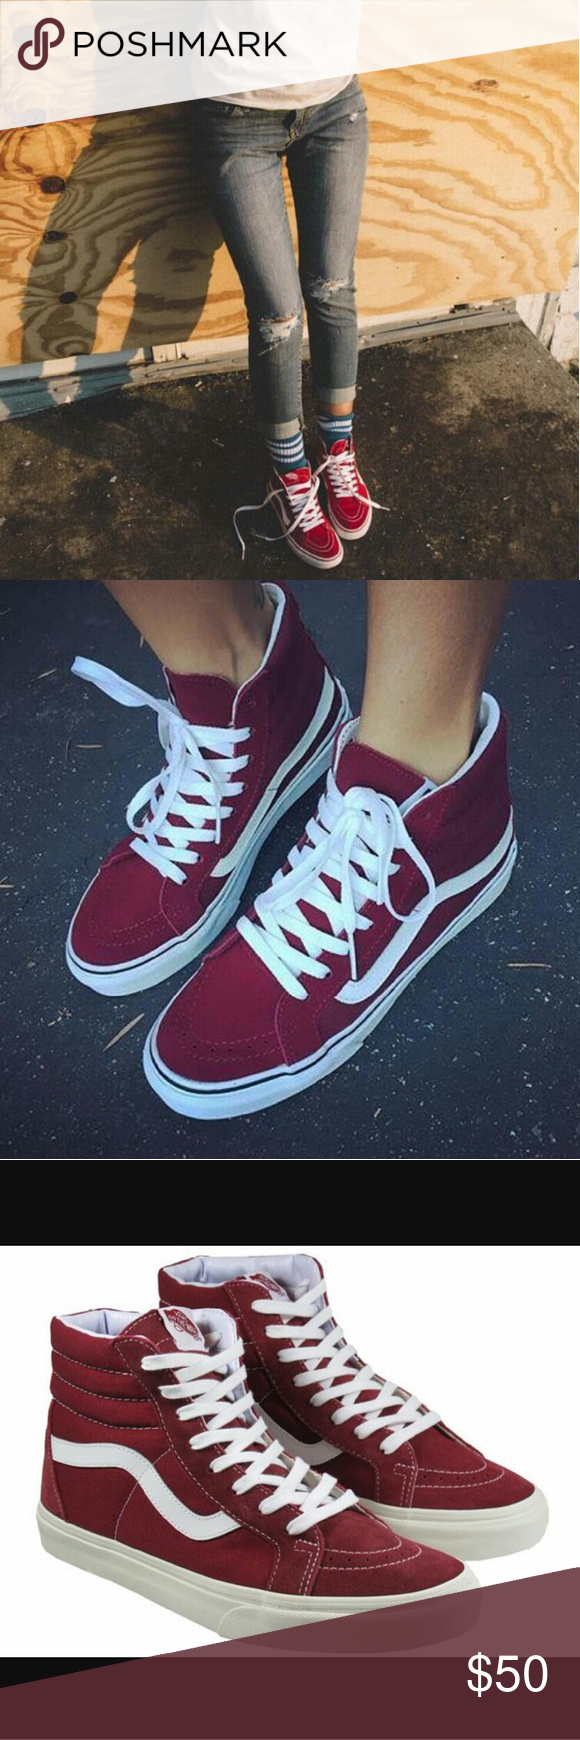 cf5e8242d4f028 VANS  Windor Wine  SK8-Hi Slim Womens Sneakers Size  7.5 Color ...